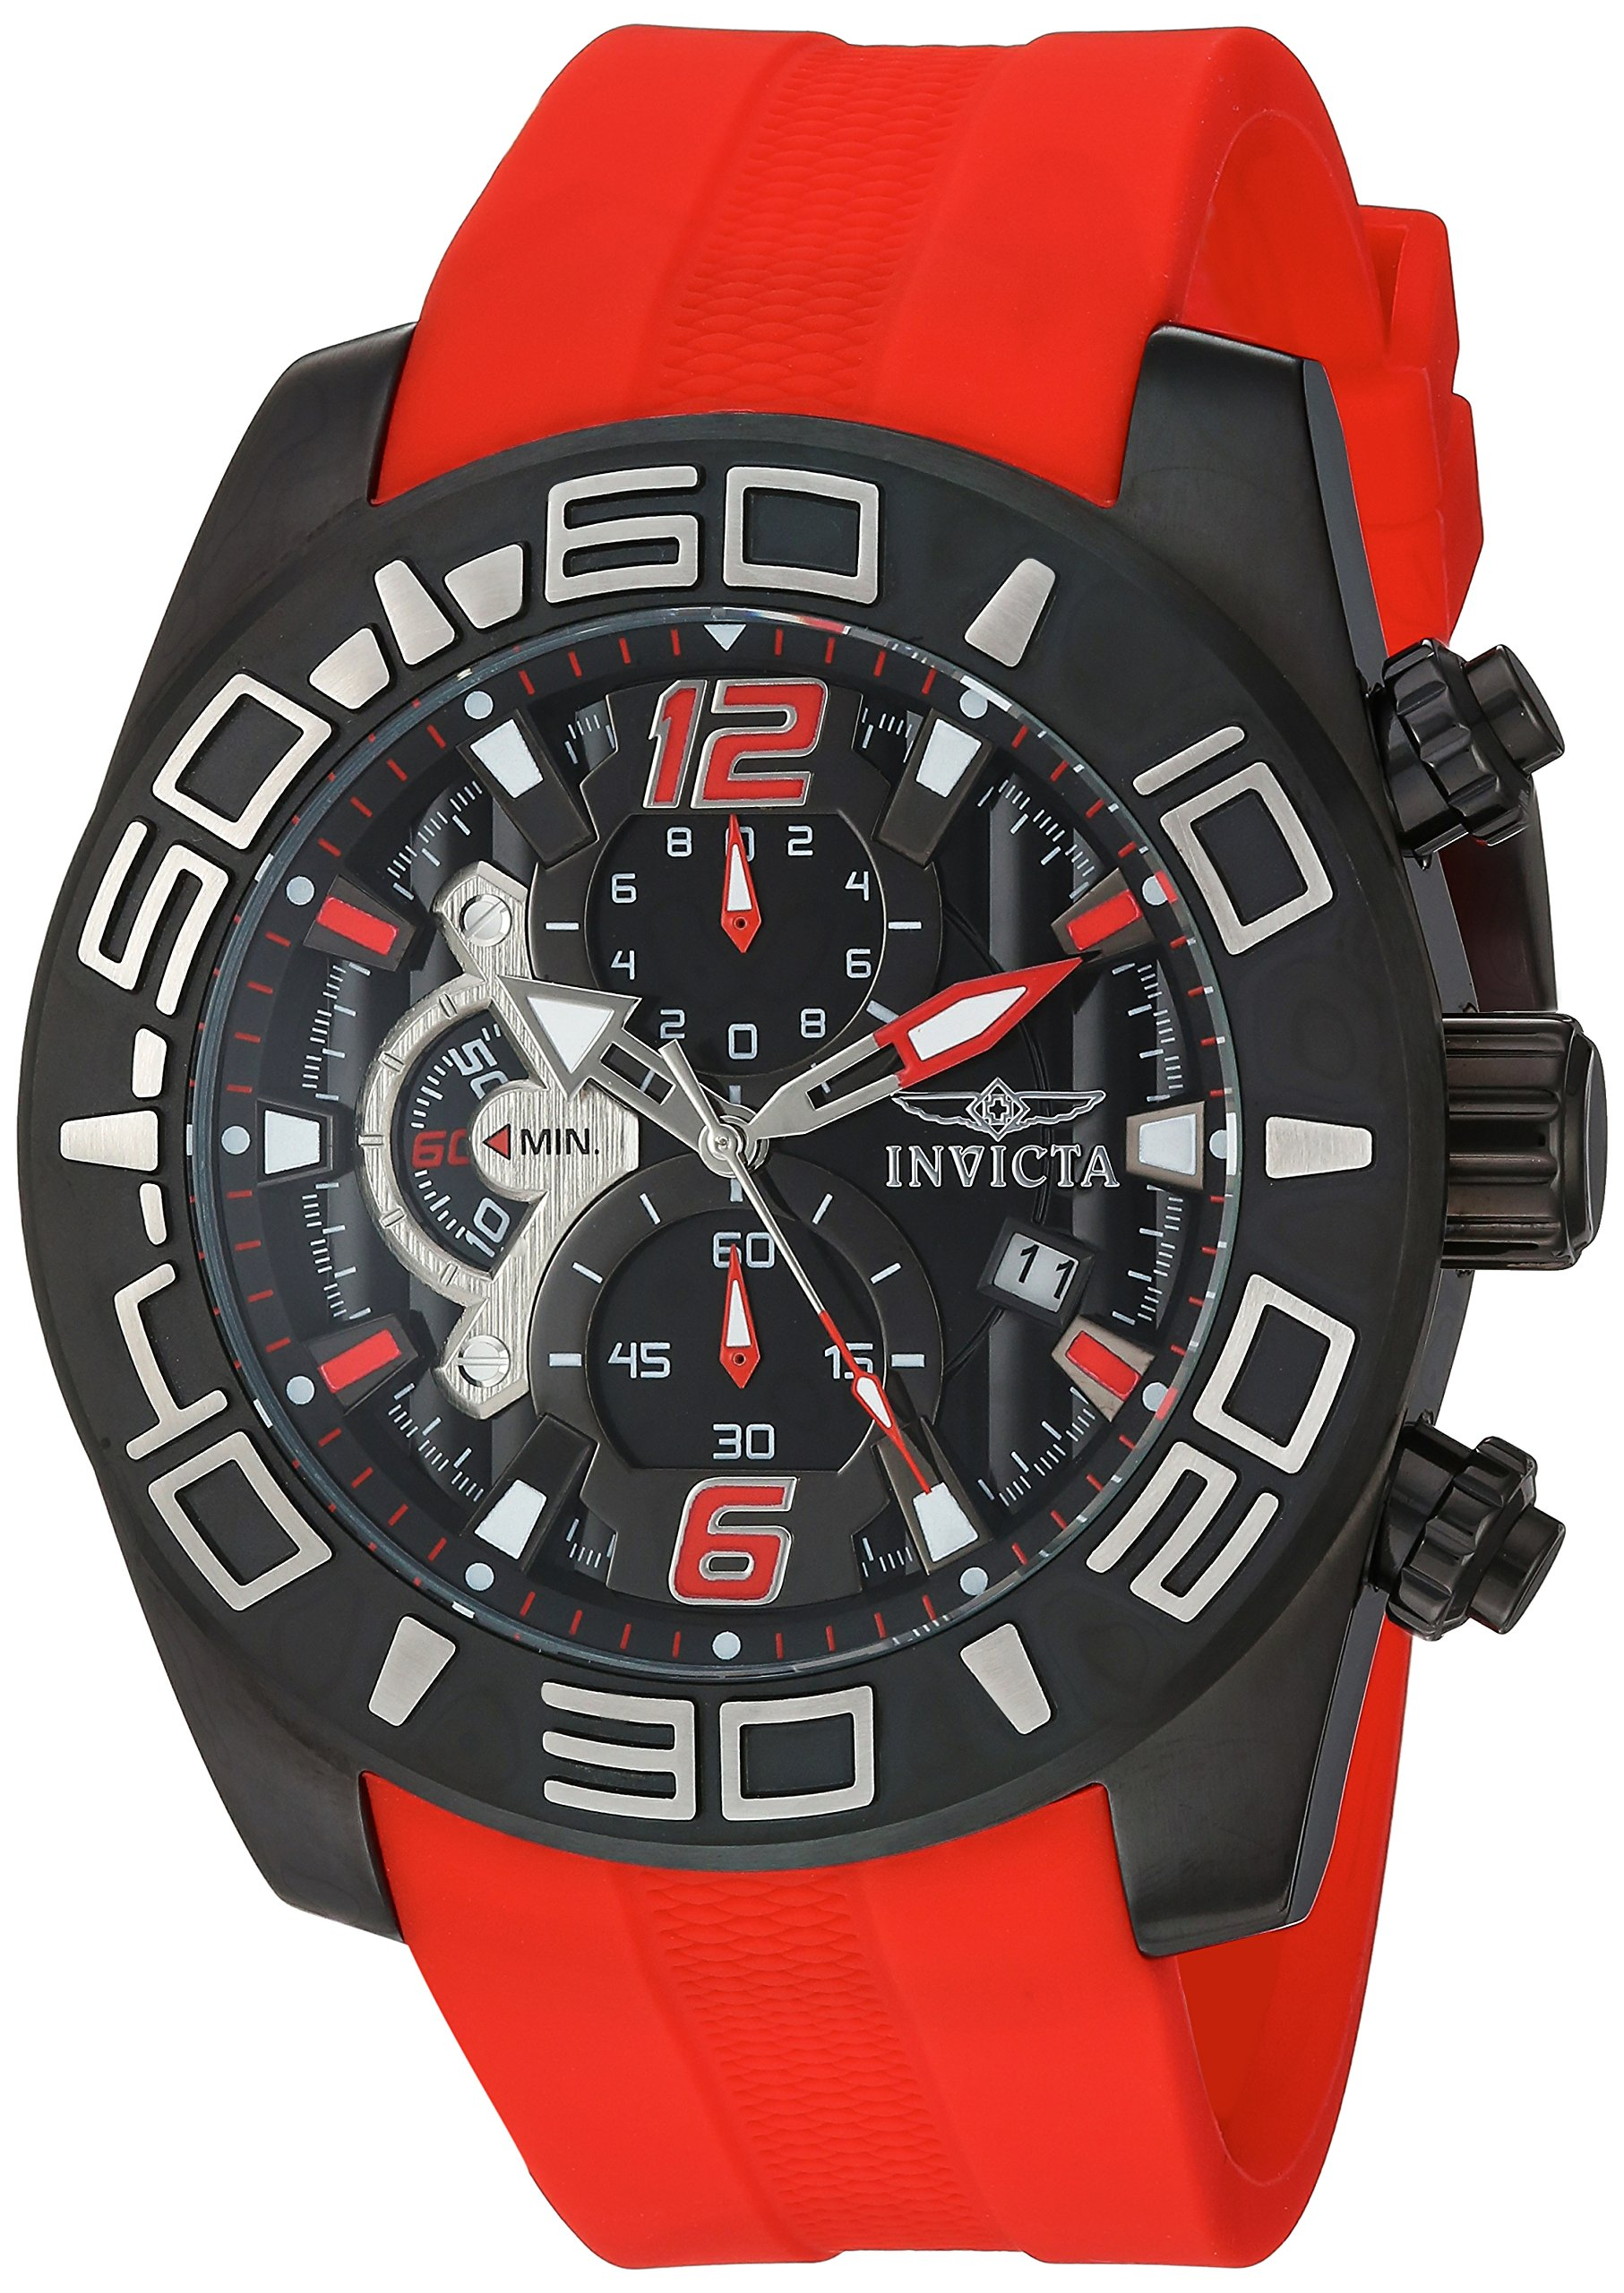 Invicta Men's Pro Diver Stainless Steel Quartz Watch with Silicone Strap, red, 25 (Model: 22810